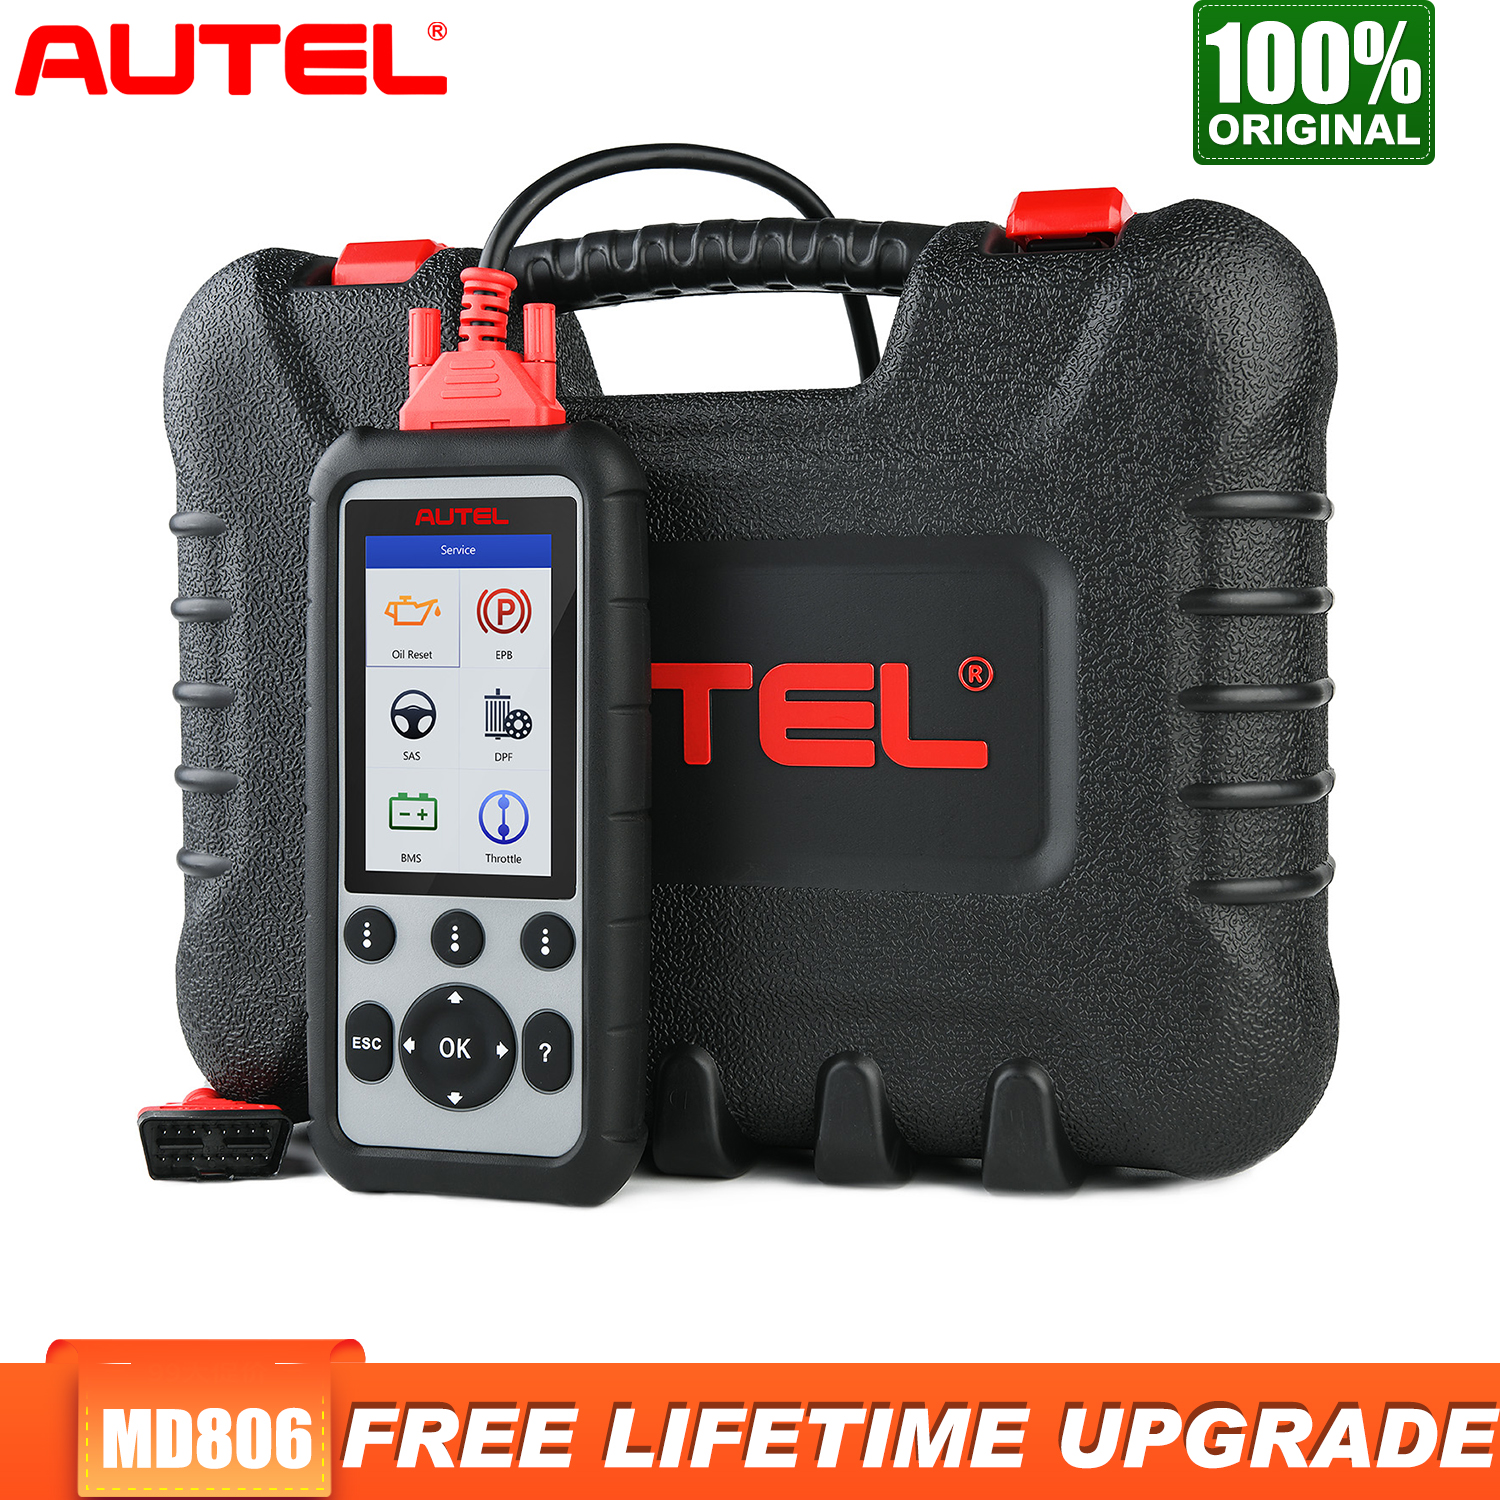 Autel MD806 Obd2 Scanner Diagnostic Auto Tool Car Diagnostic Four System Diagnoses EPB/Oil Reset/BMS DPF Batter Than MD805 MD802 image